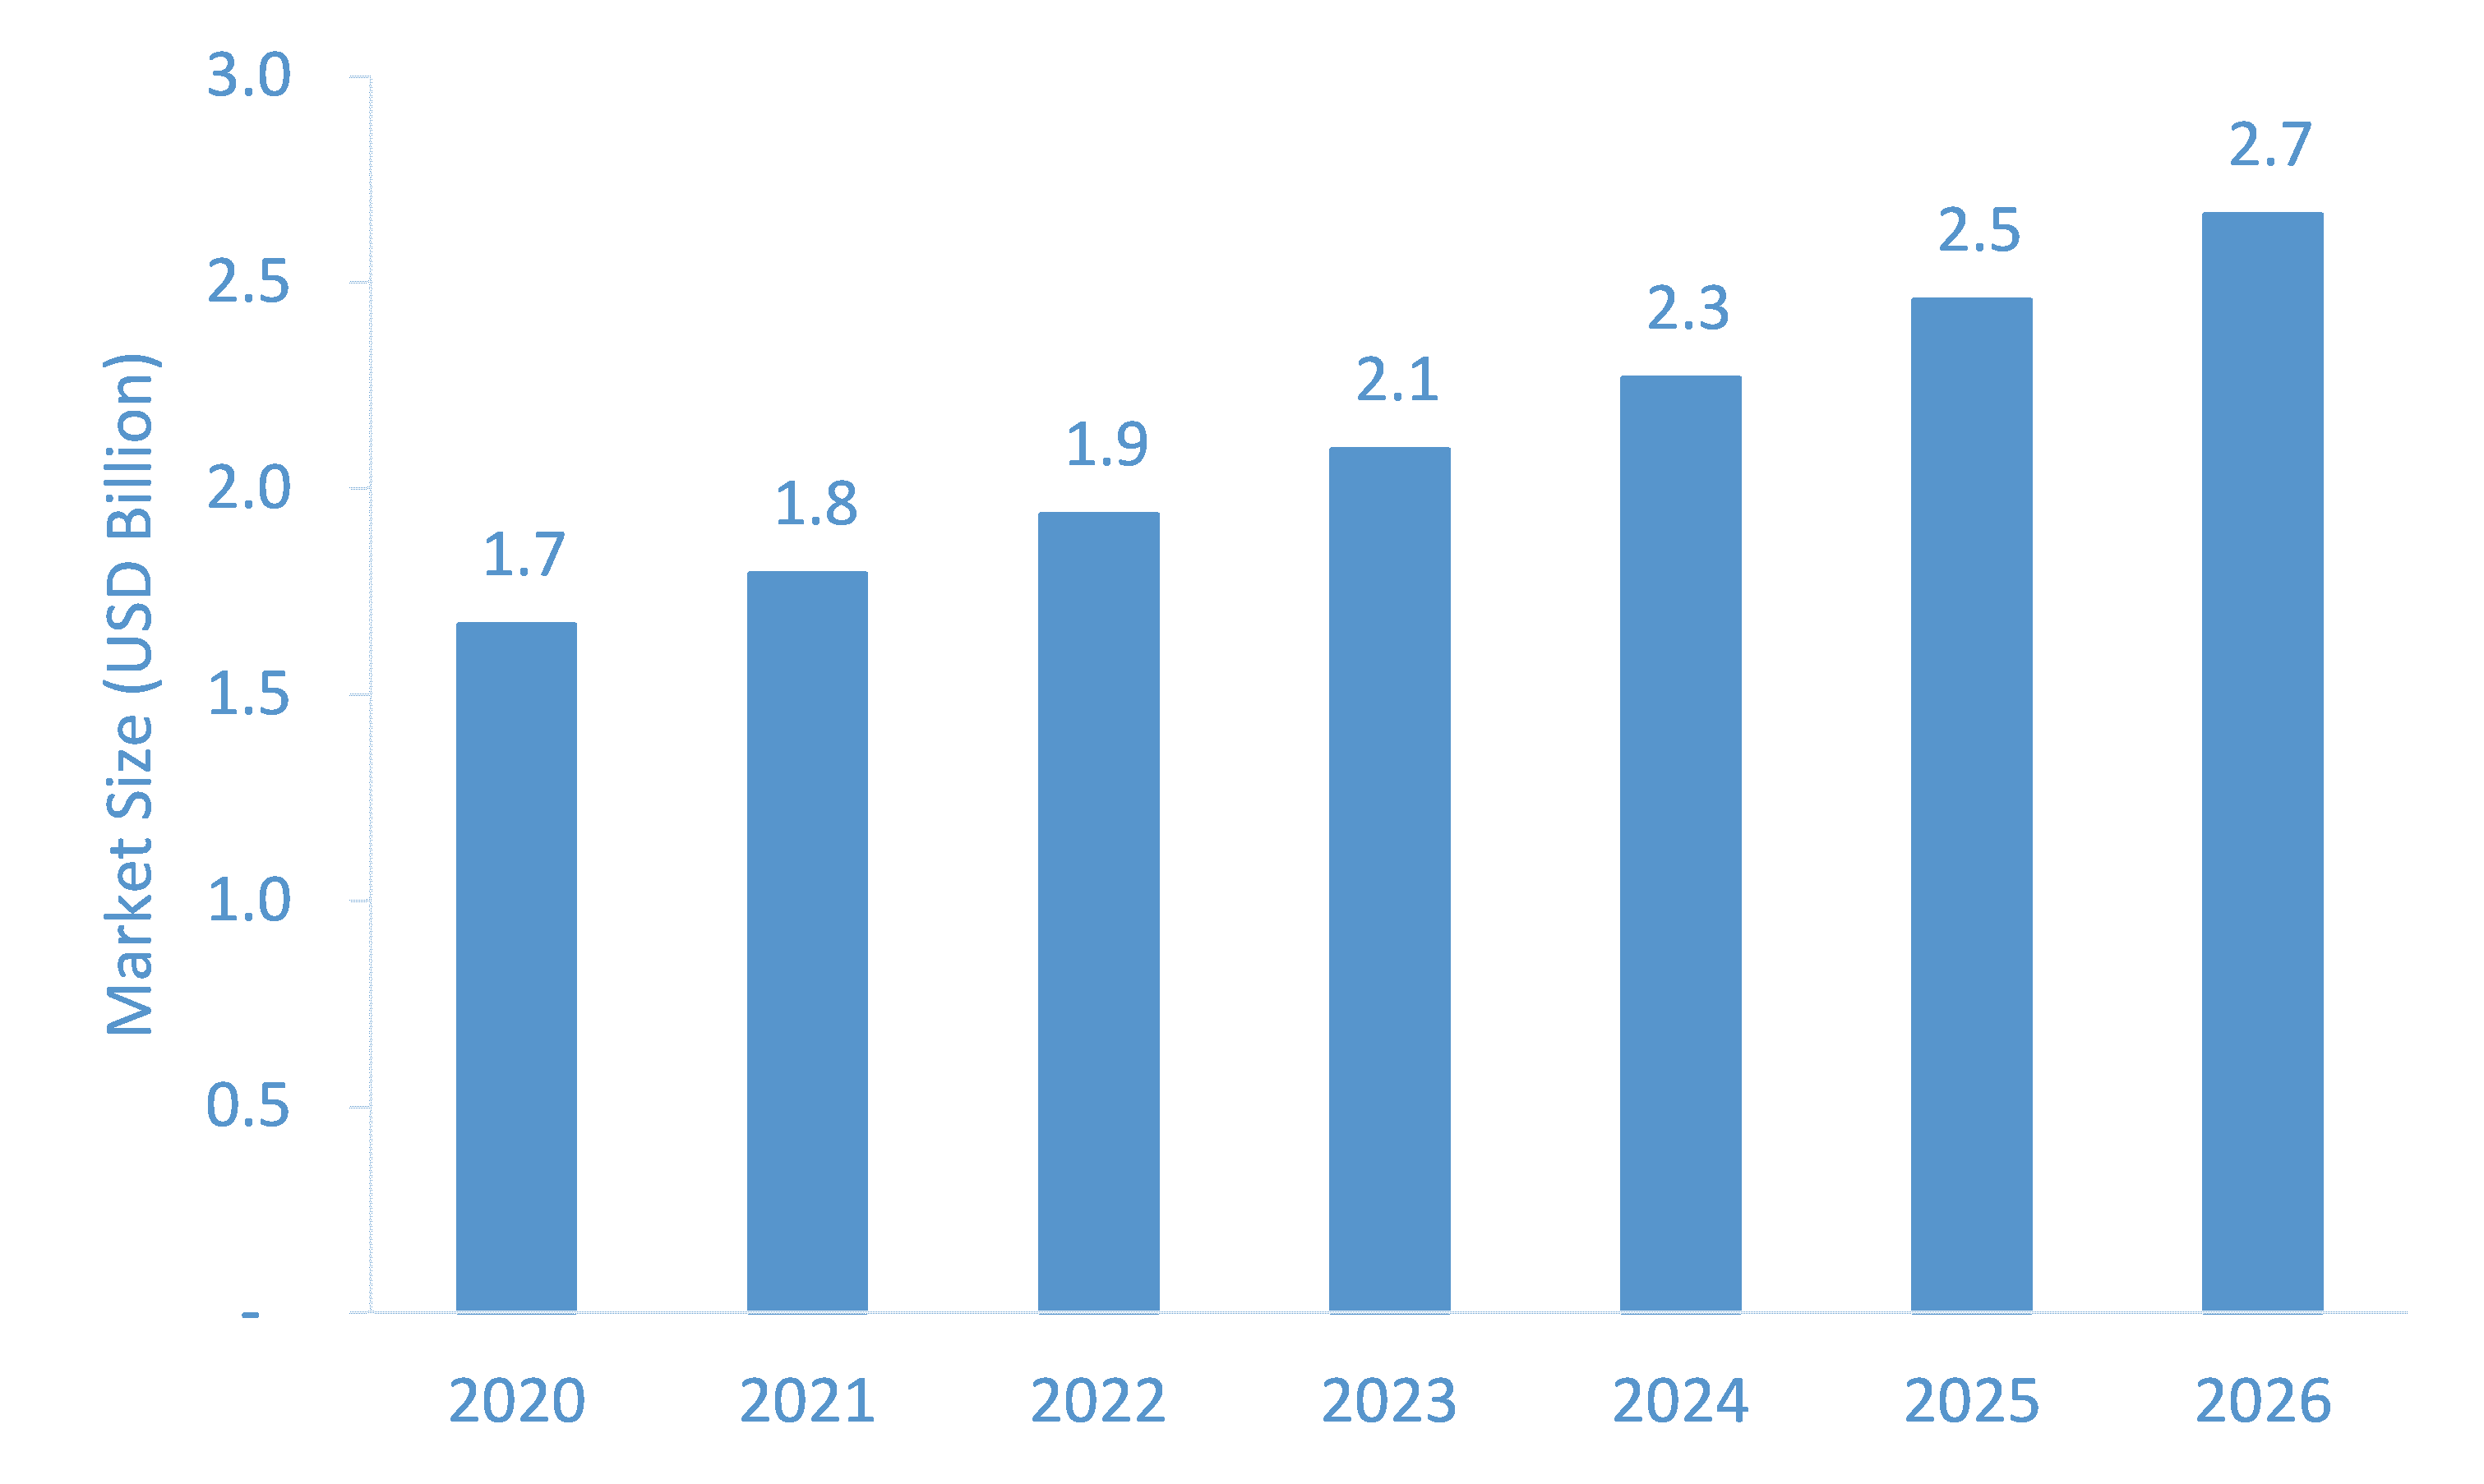 Anti-Aging-Products-and-Therapies-Market-Forecast